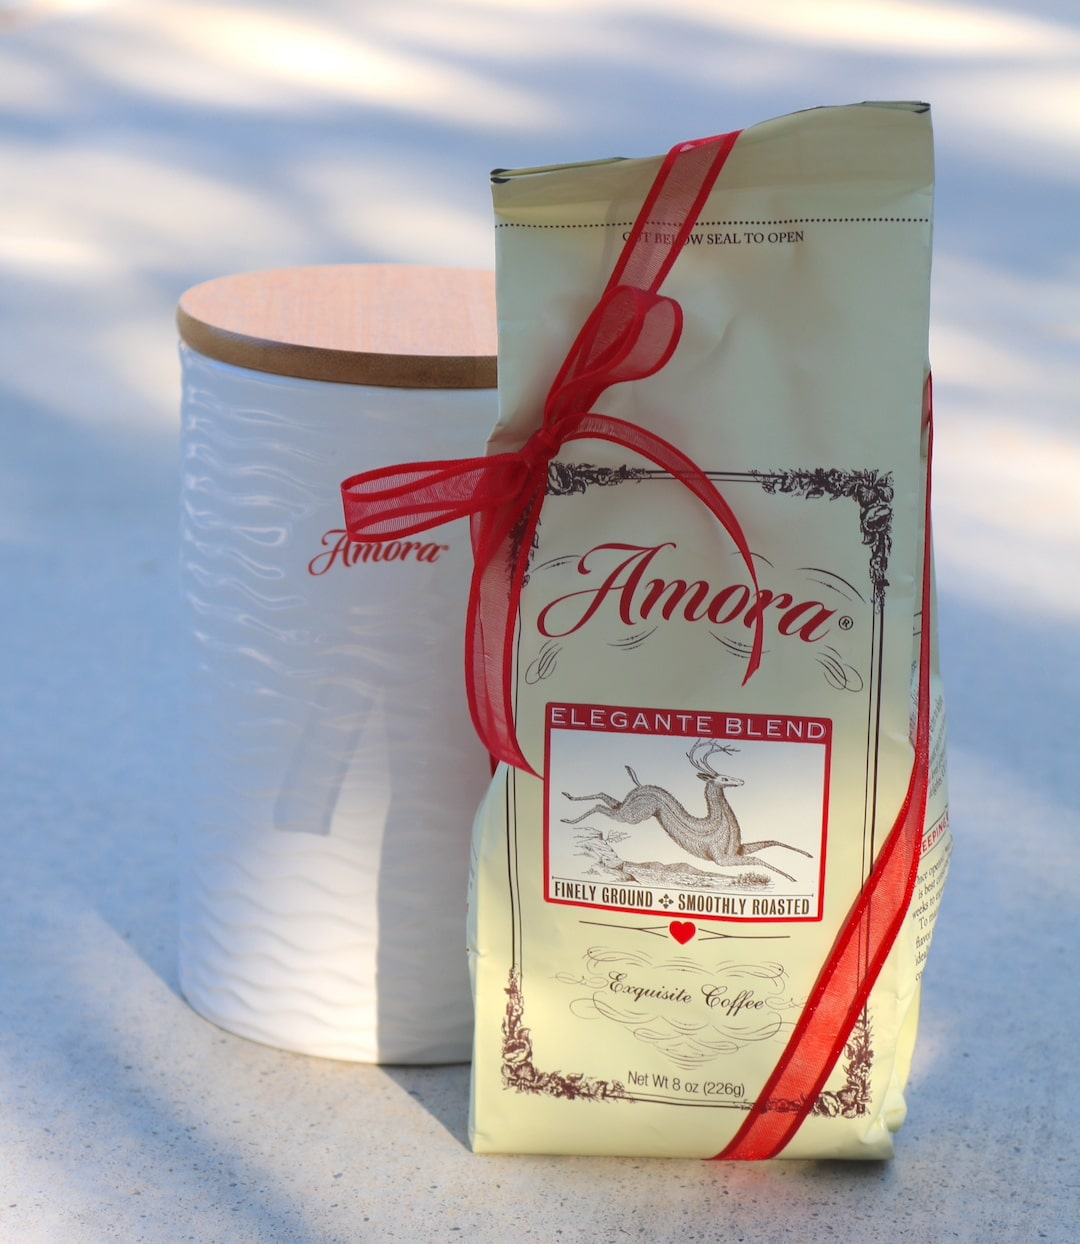 Image of bag of Amora coffee wrapped in red ribbon, next to an Amora coffee bean container